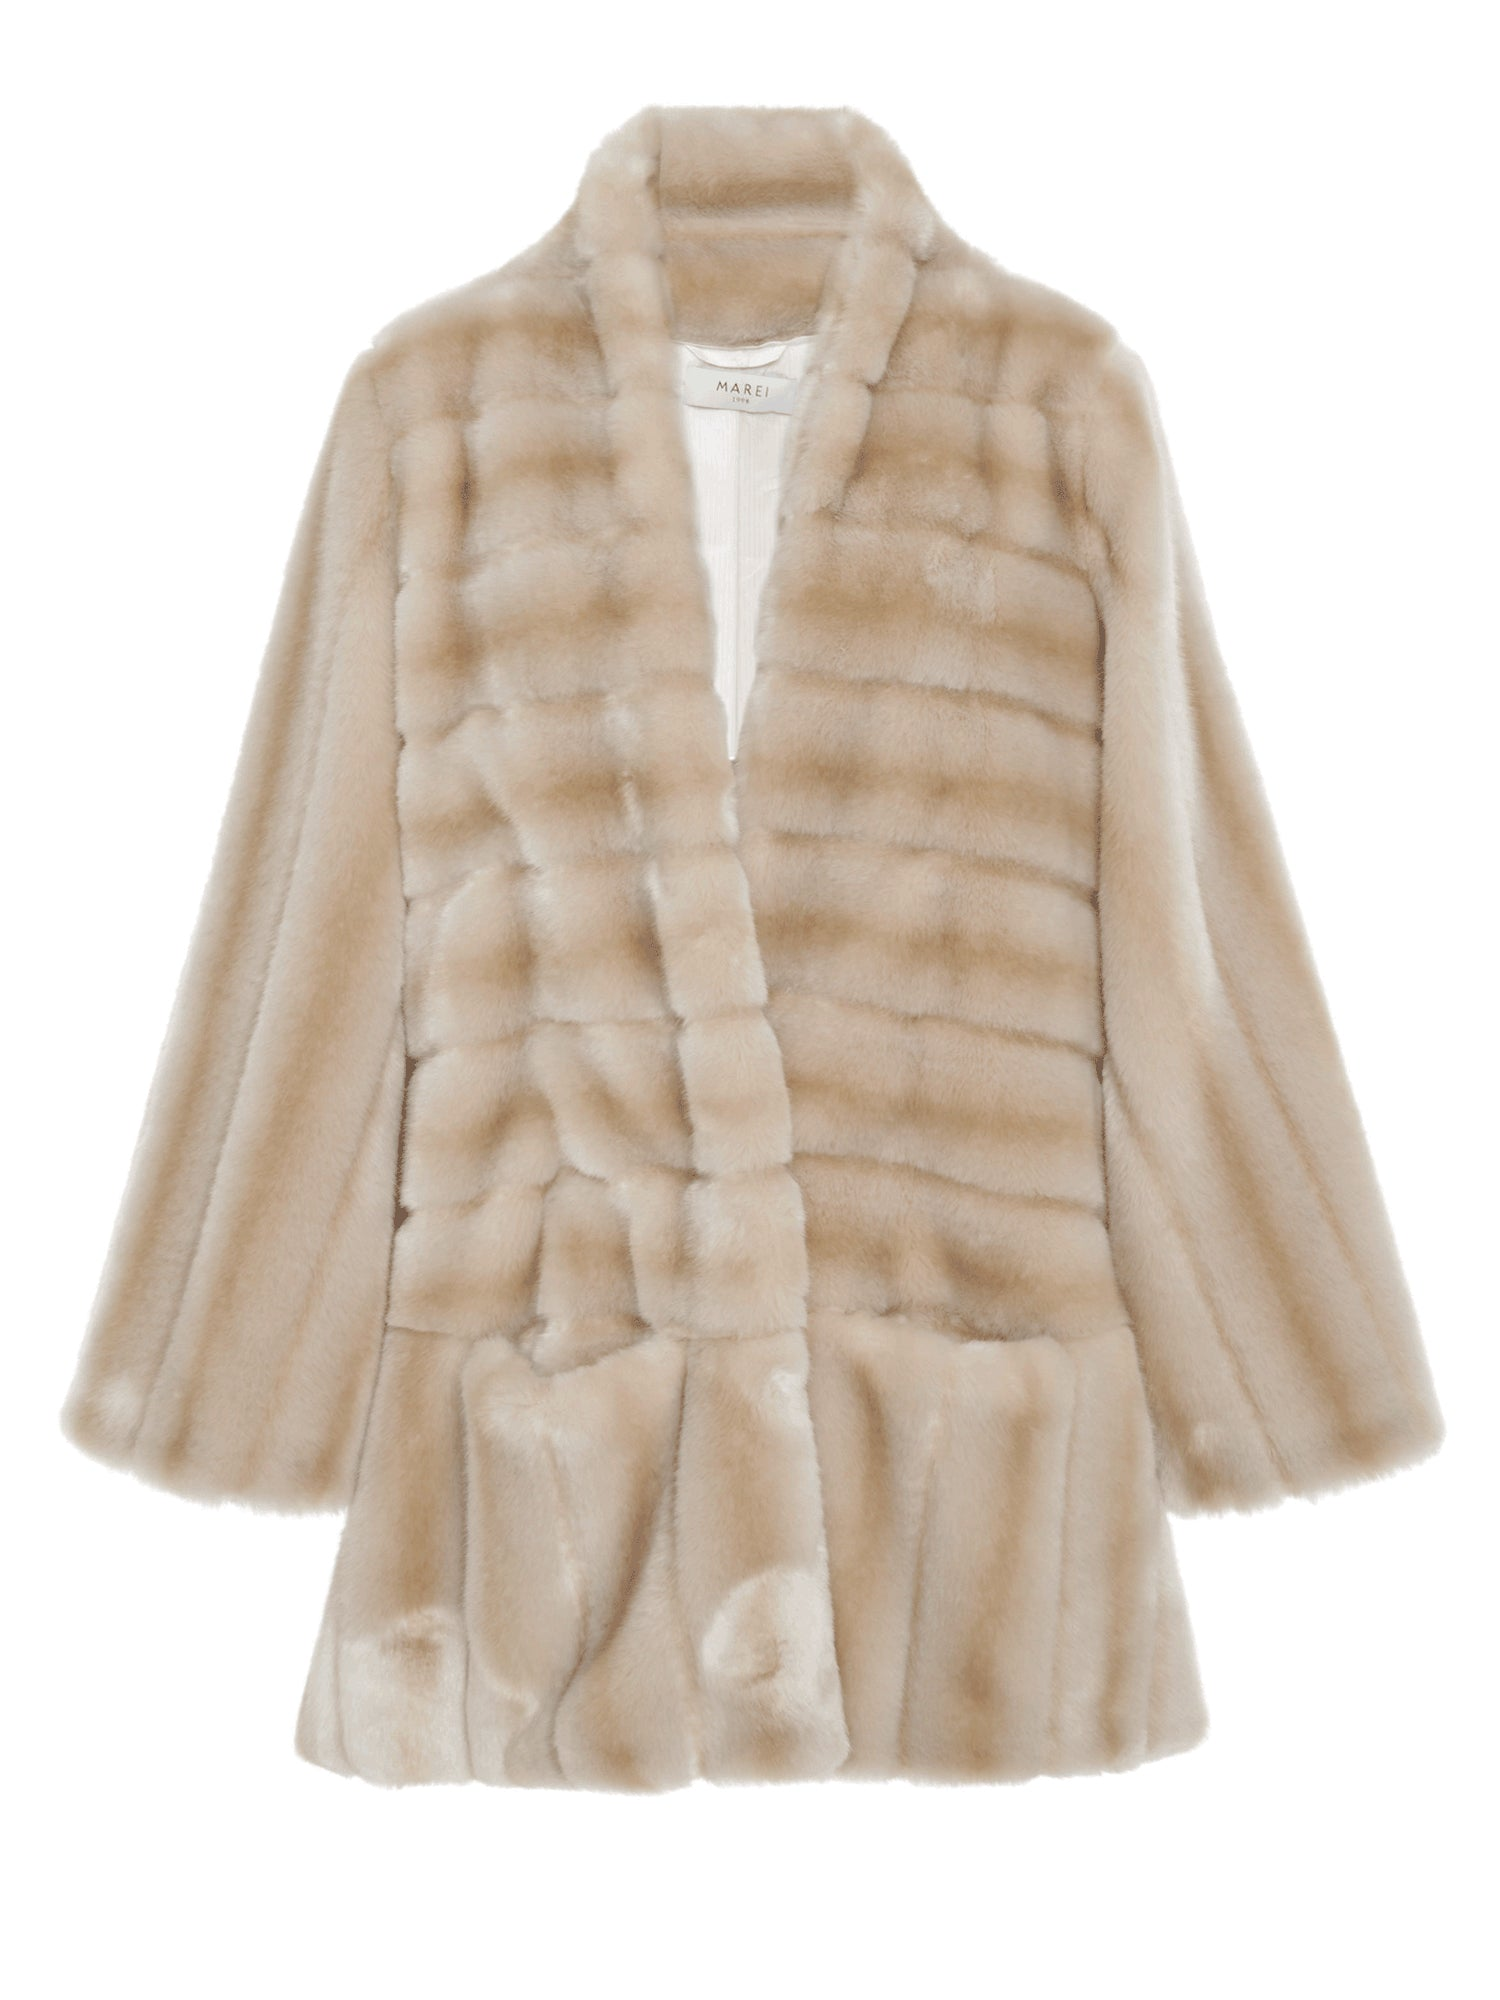 A Packshot Of Marei1998's Ivy Faux Fur Short Coat In The Classiest Beige Hue. Made From Plush Faux Fur, It Is Cut In A Slight A-Lined Shape And Fully Lined.